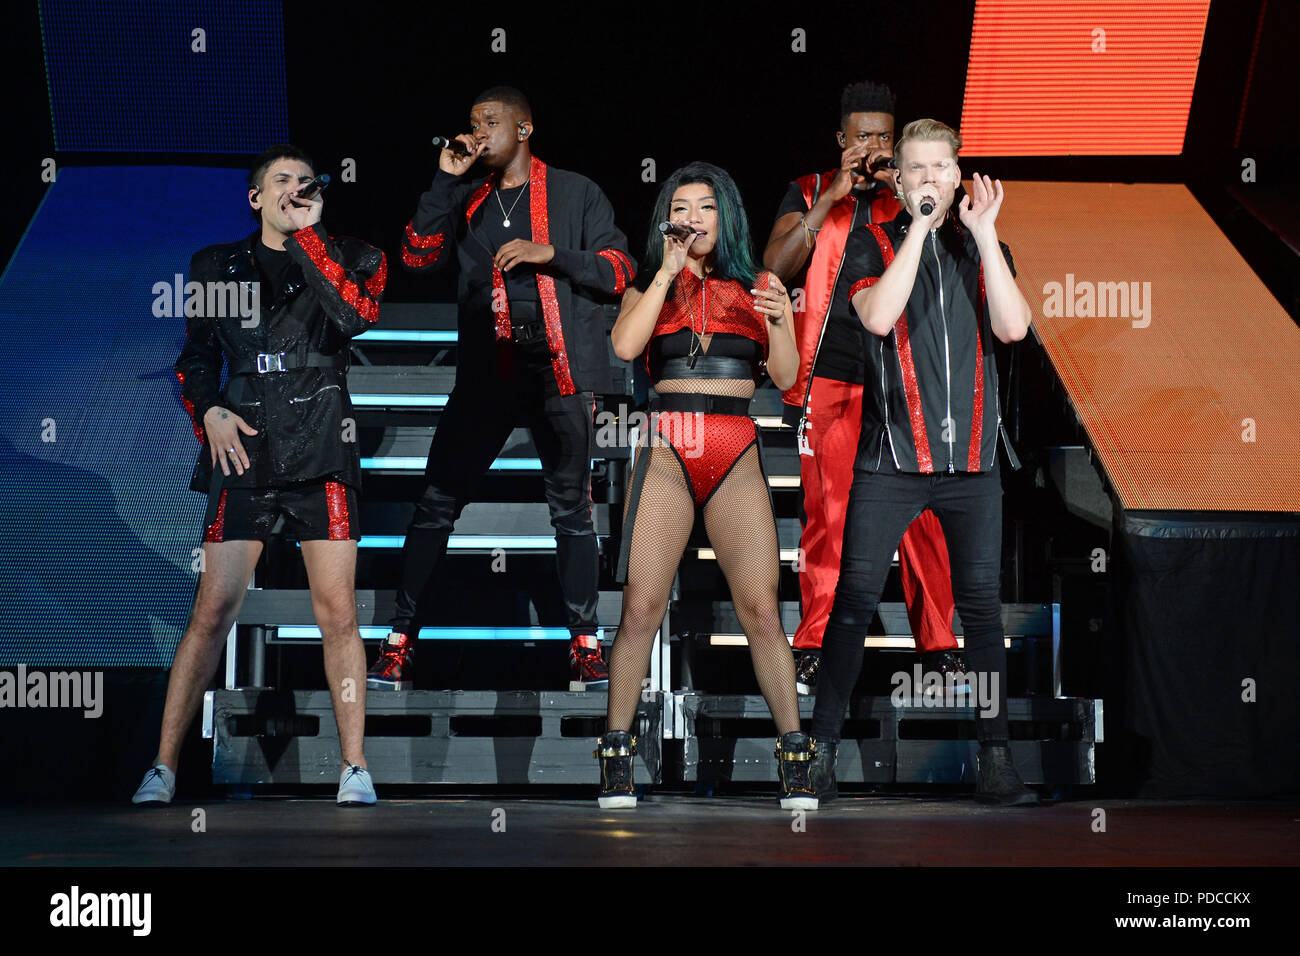 Pentatonix Stock Photos & Pentatonix Stock Images - Alamy